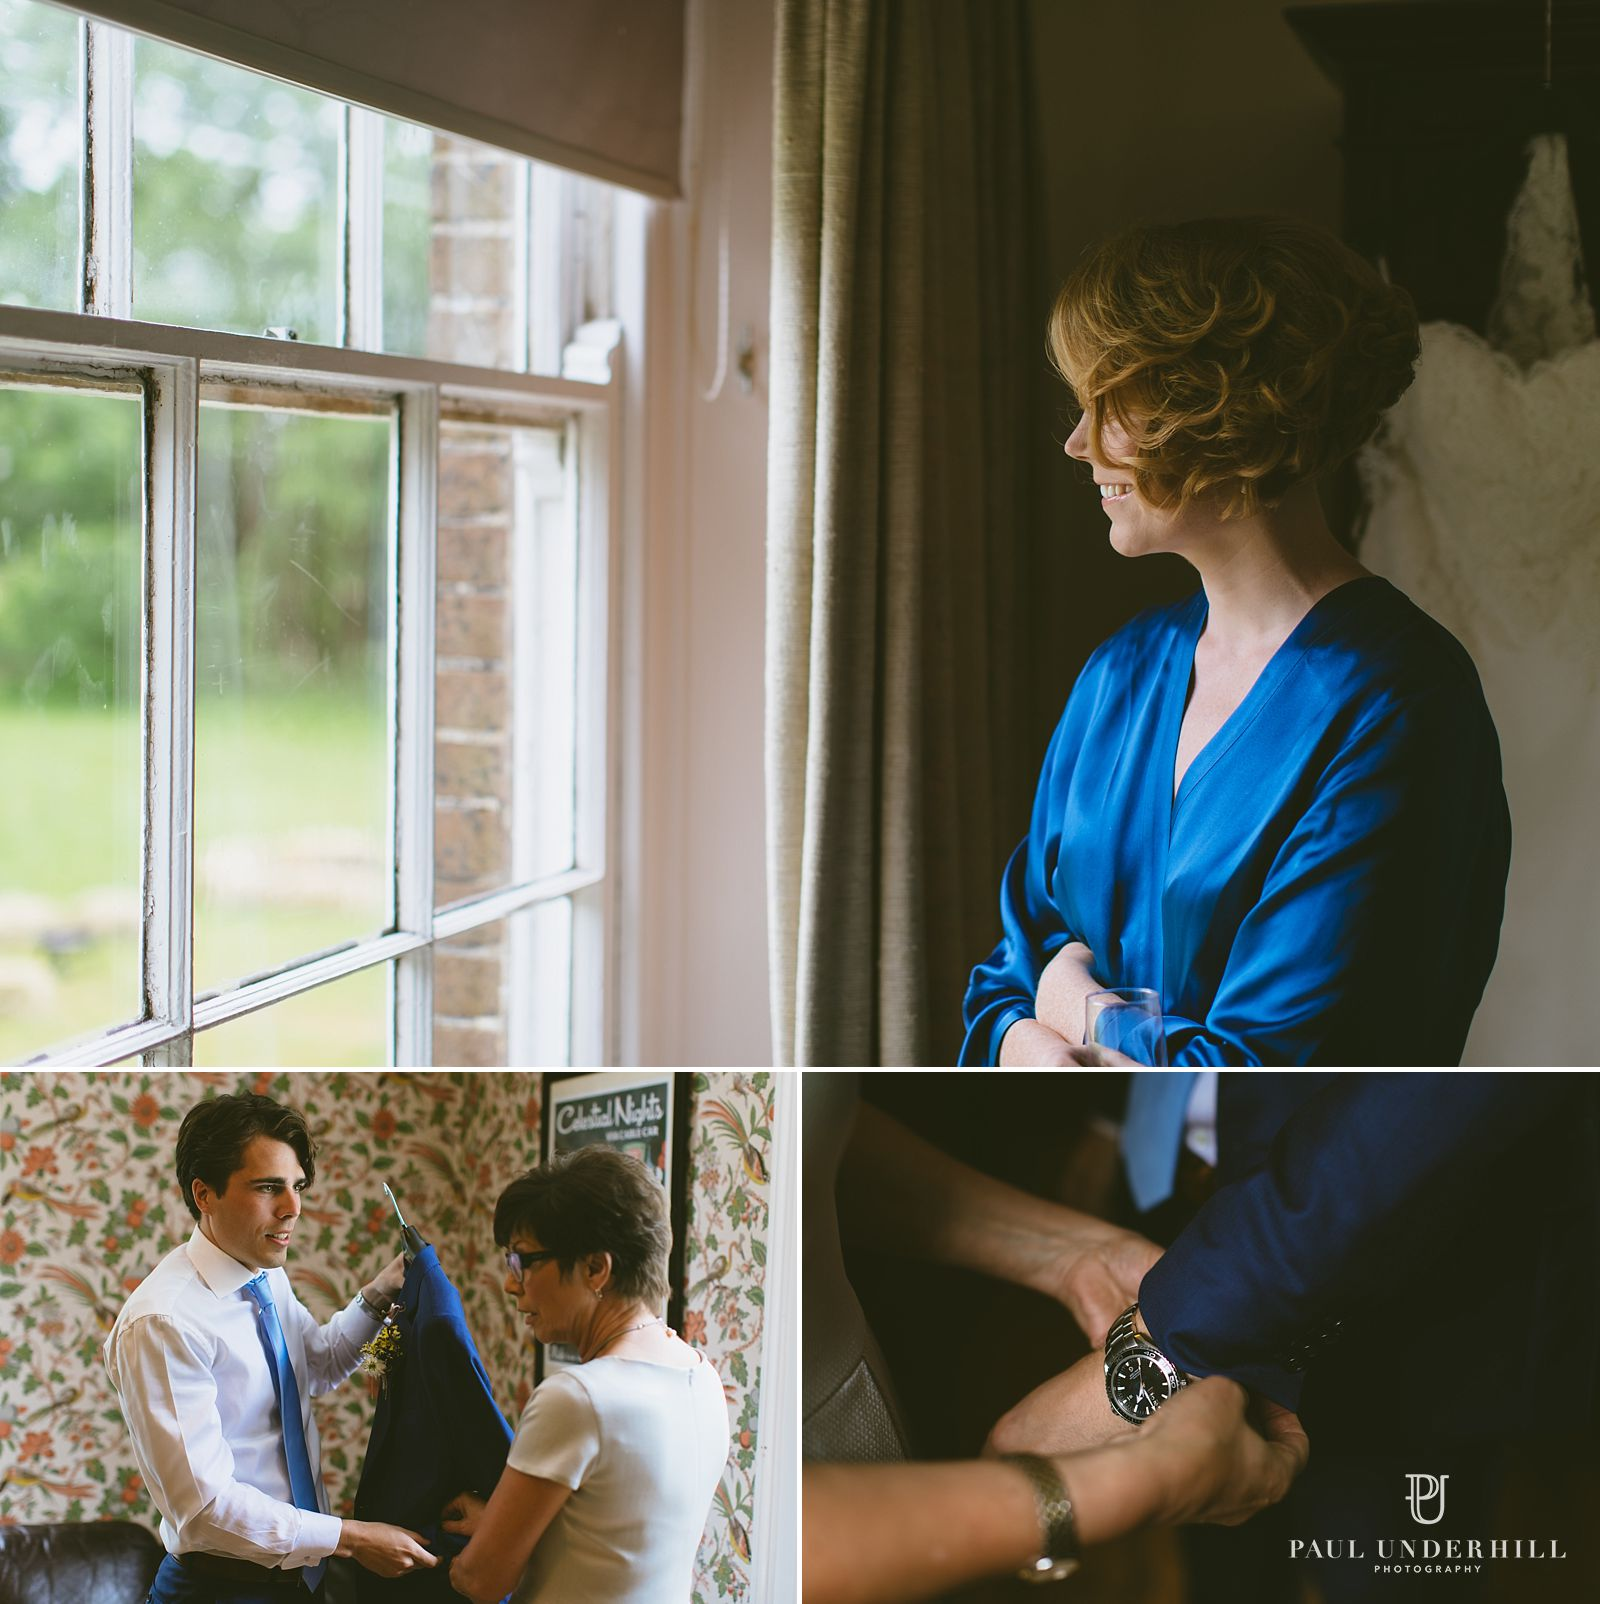 Wedding photography in Dorset